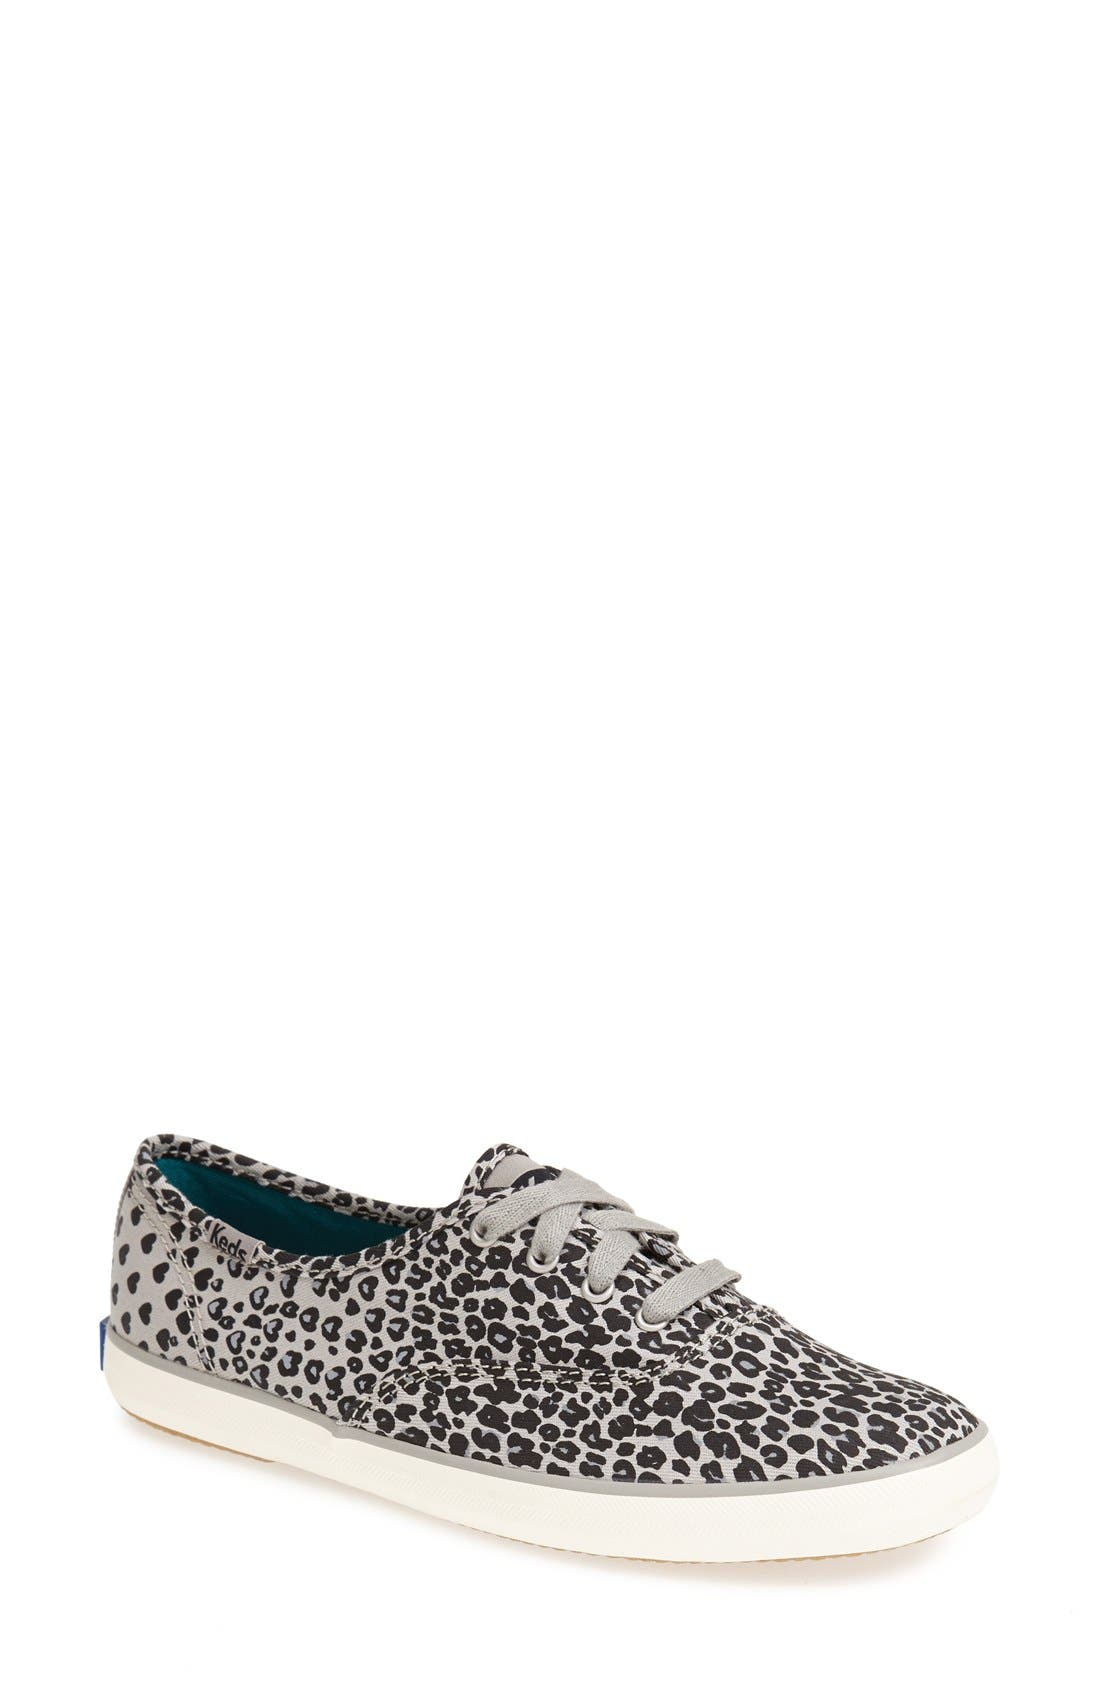 'Champion - Leopard' Sneaker,                         Main,                         color, Black